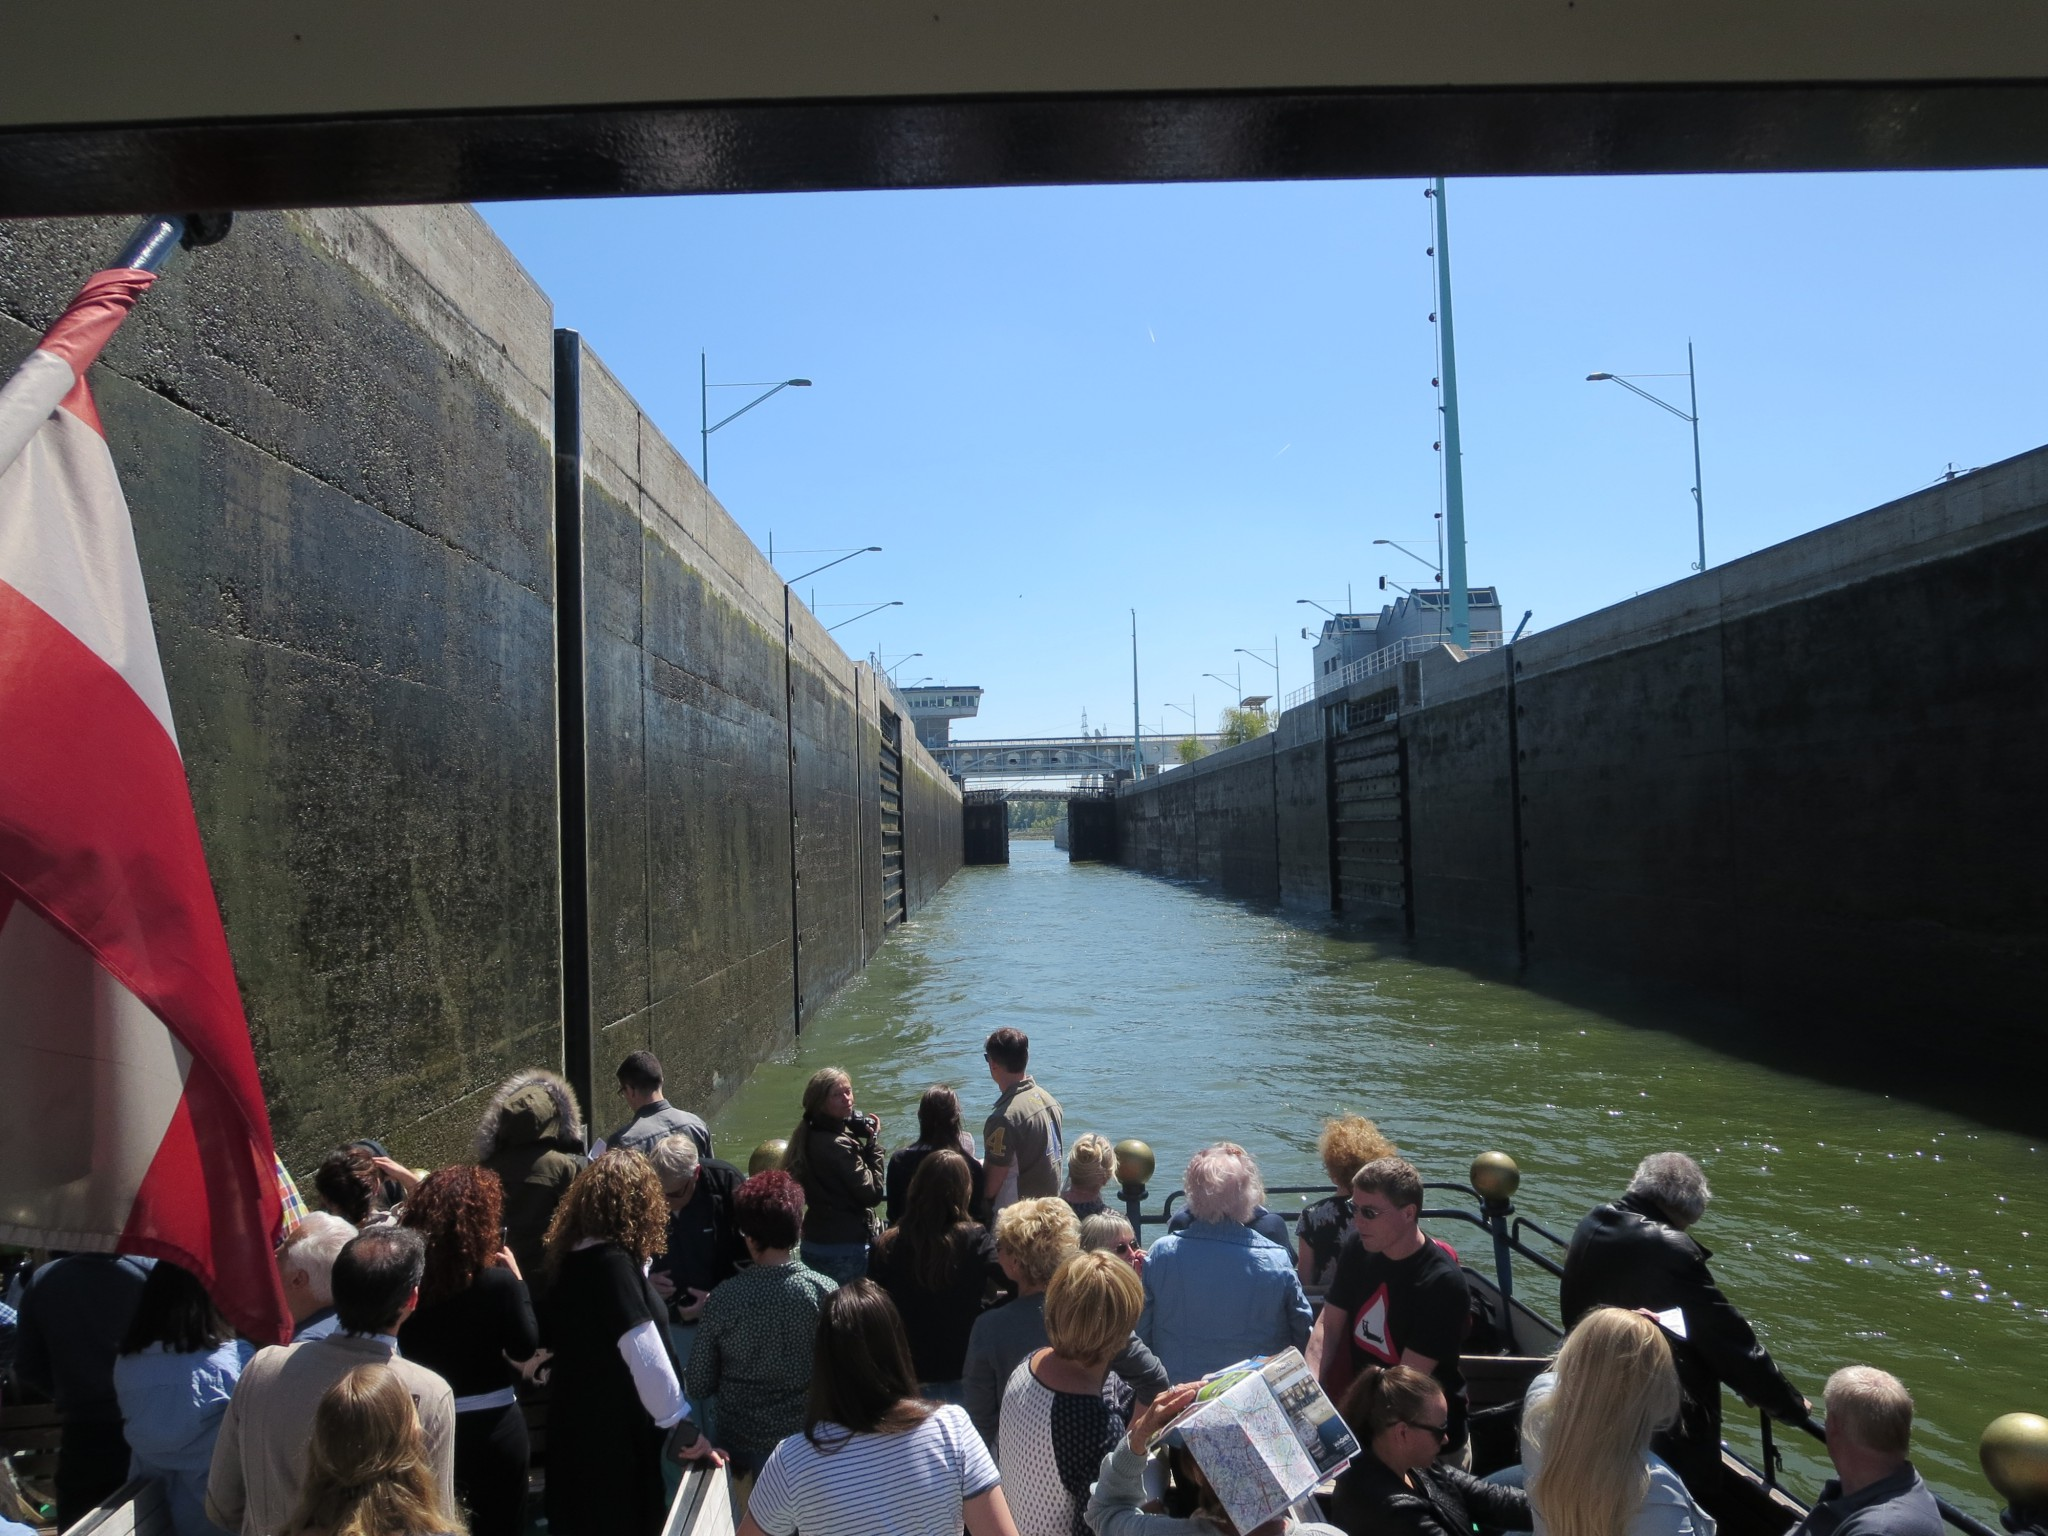 Going through the locks on the Danube river